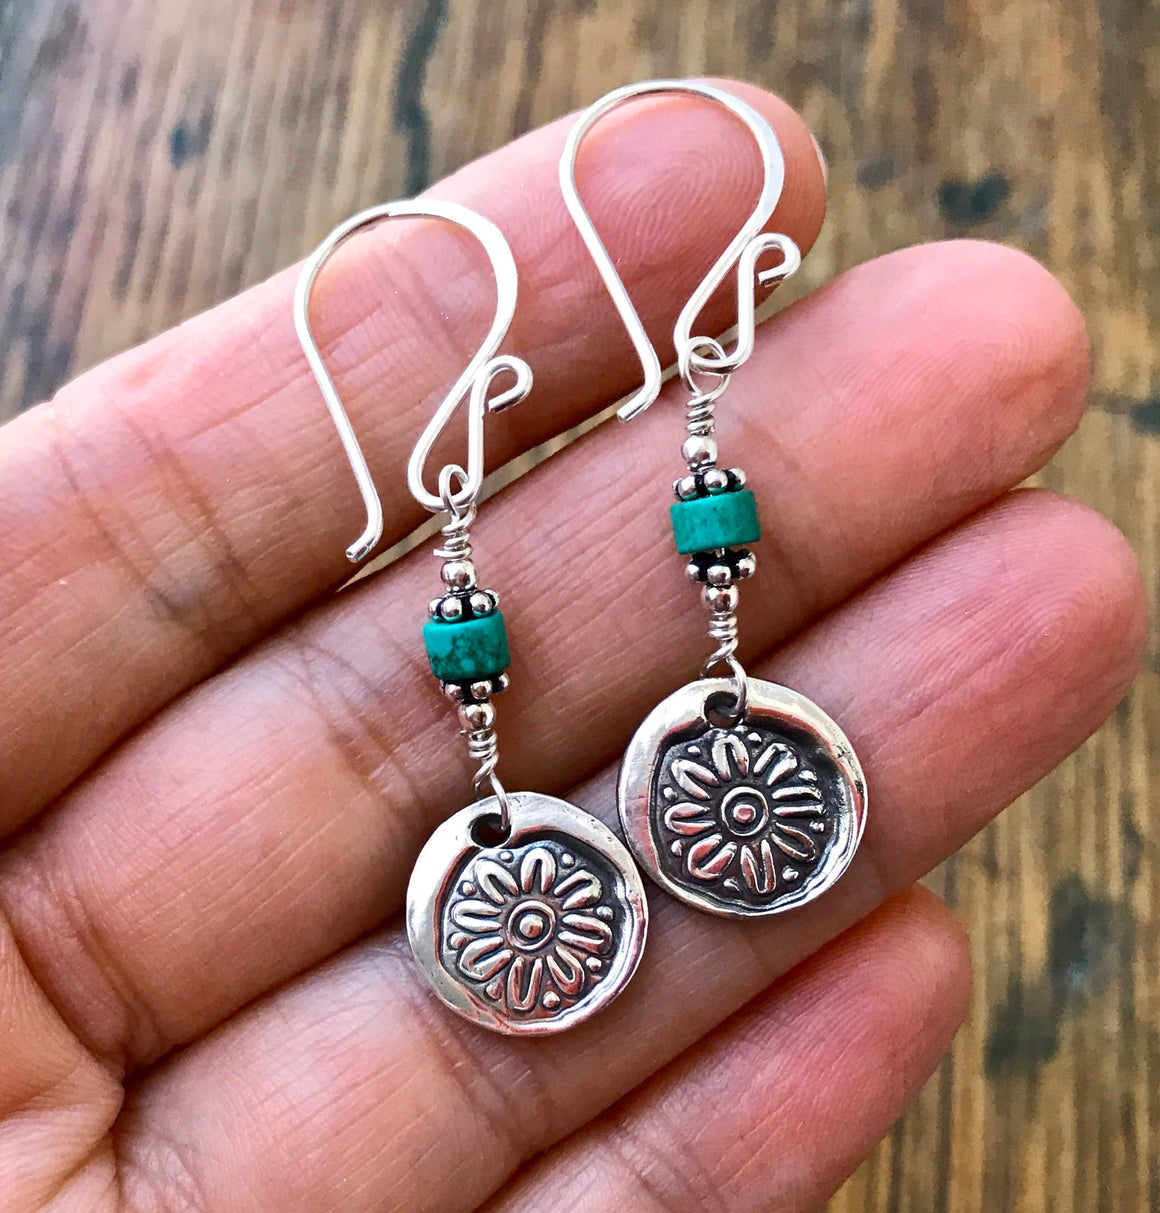 Blue Turquoise and Silver Dangle Earrings with Circular Silver Flower Charms